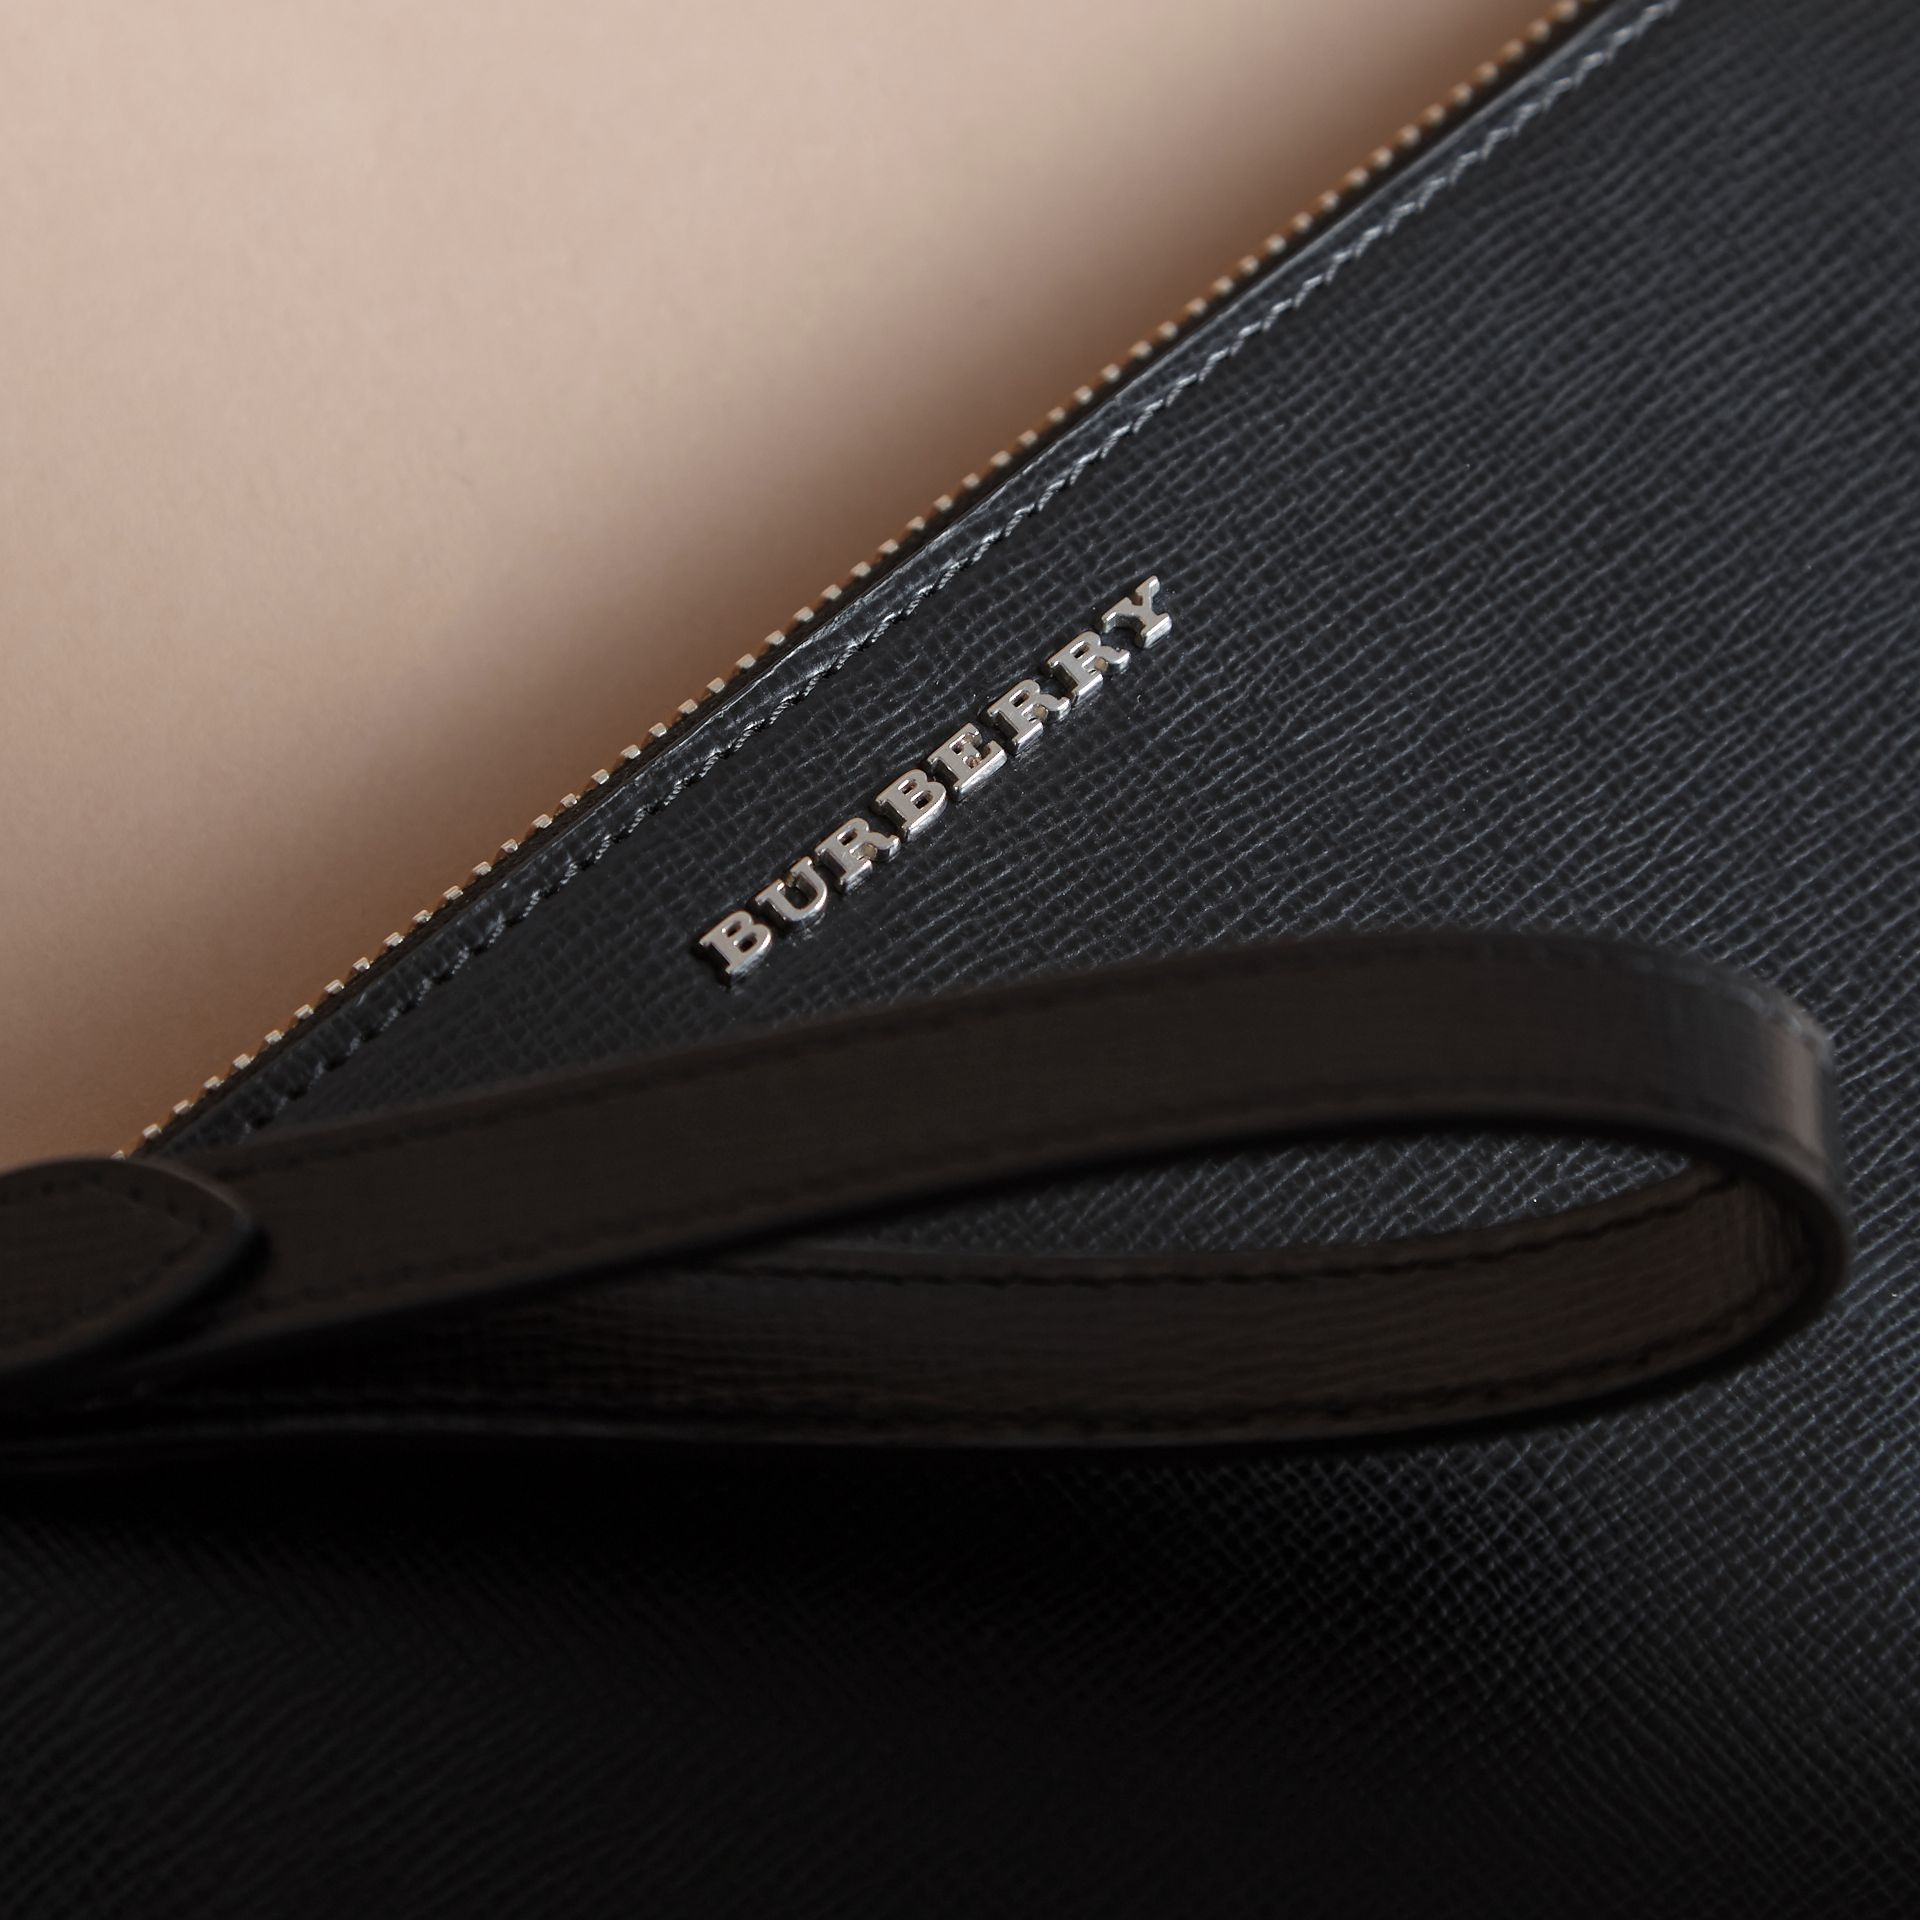 London Leather Travel Wallet in Black | Burberry - gallery image 1